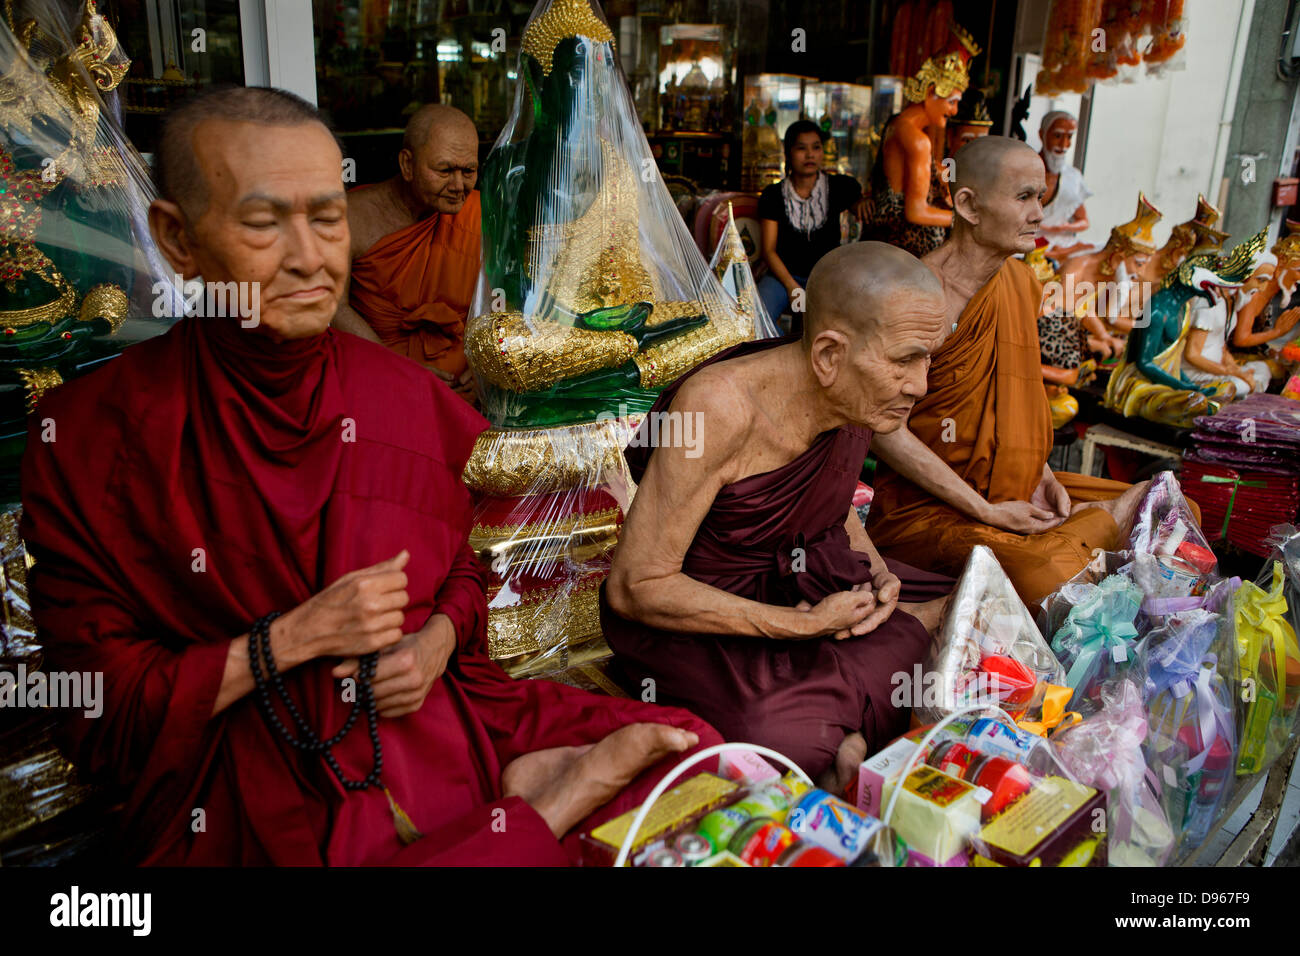 Waxwork statues of revered Buddhist figures for sale, Bangkok, Thailand - Stock Image